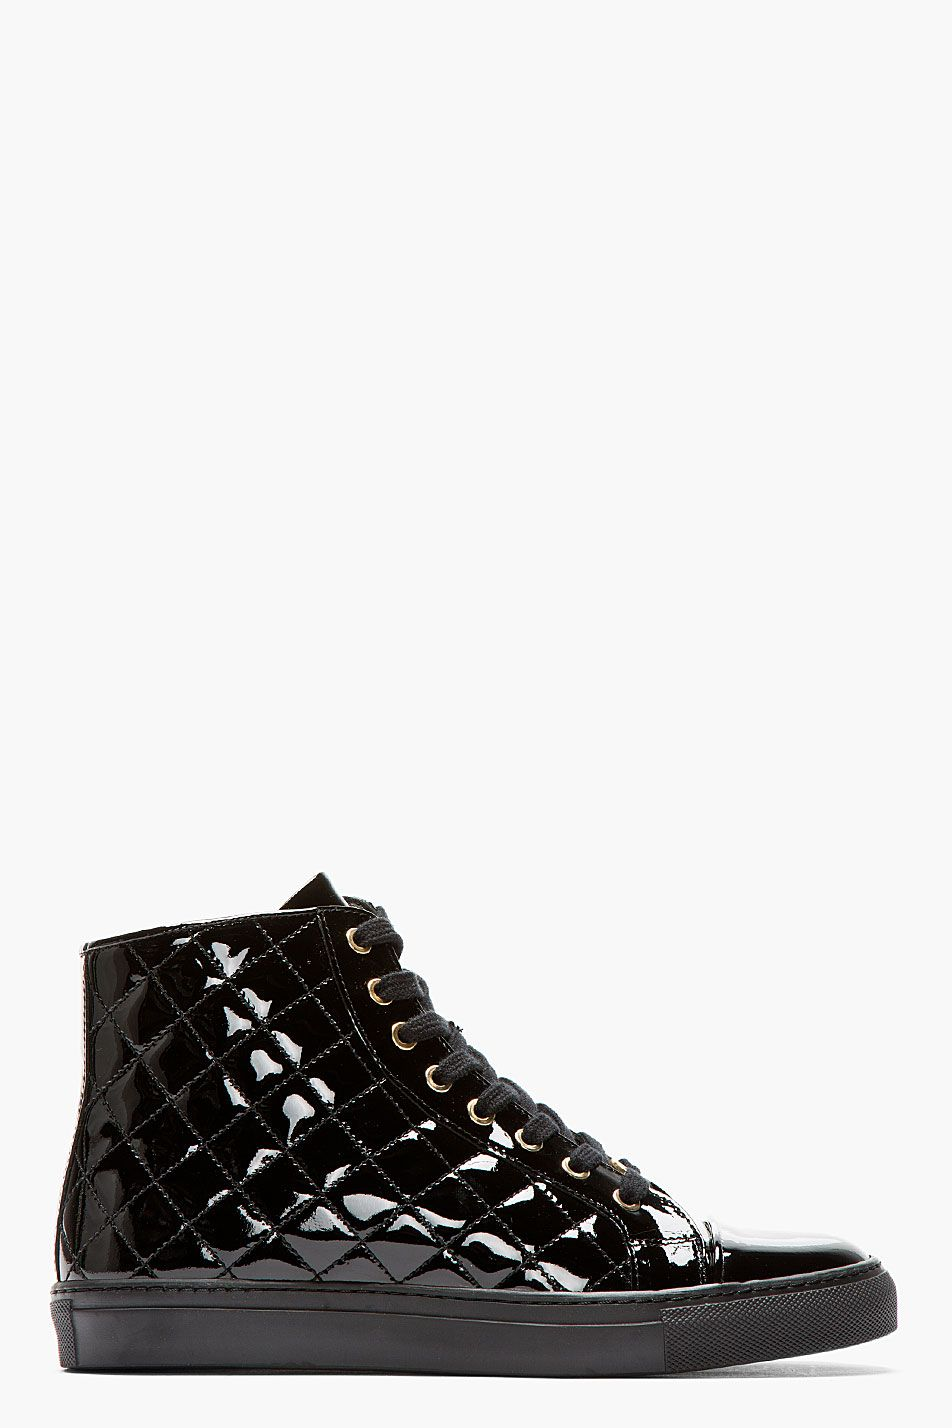 VERSUS Negro patent leather QUILTED SNEAKERS Kenneth  Kenneth SNEAKERS Uran 9f16db